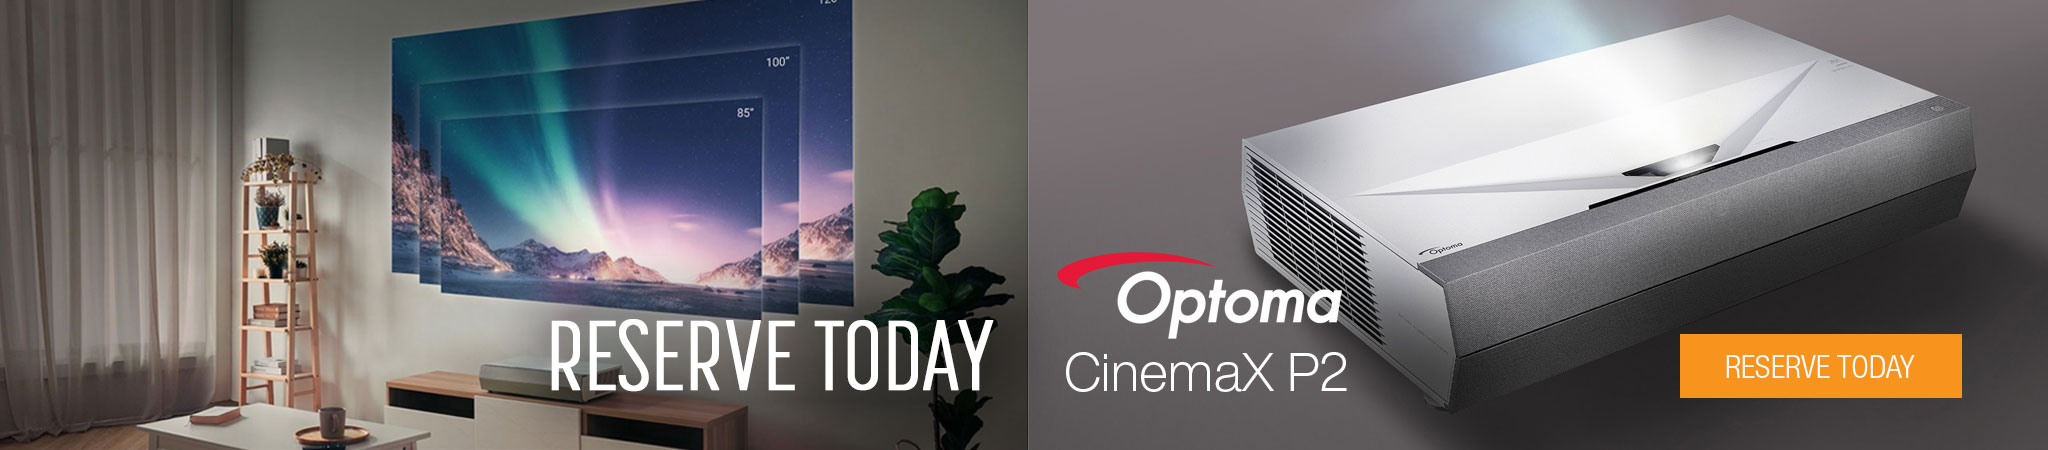 Reserve your Optoma CinemaX P2 projector today